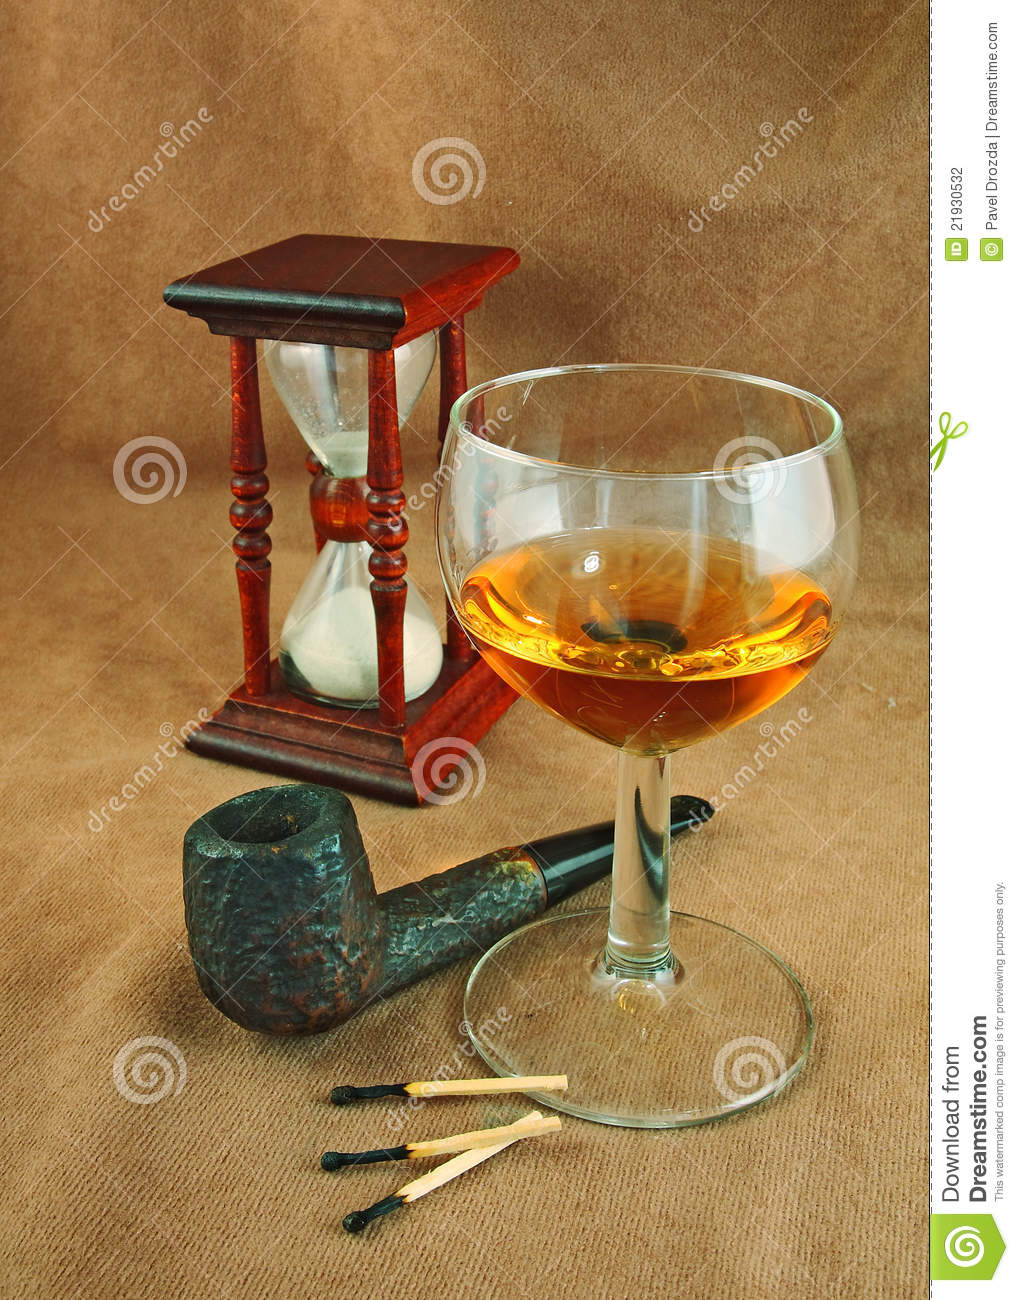 Old Pipe And A Glass Of Whiskey Stock Photo - Image of smoking